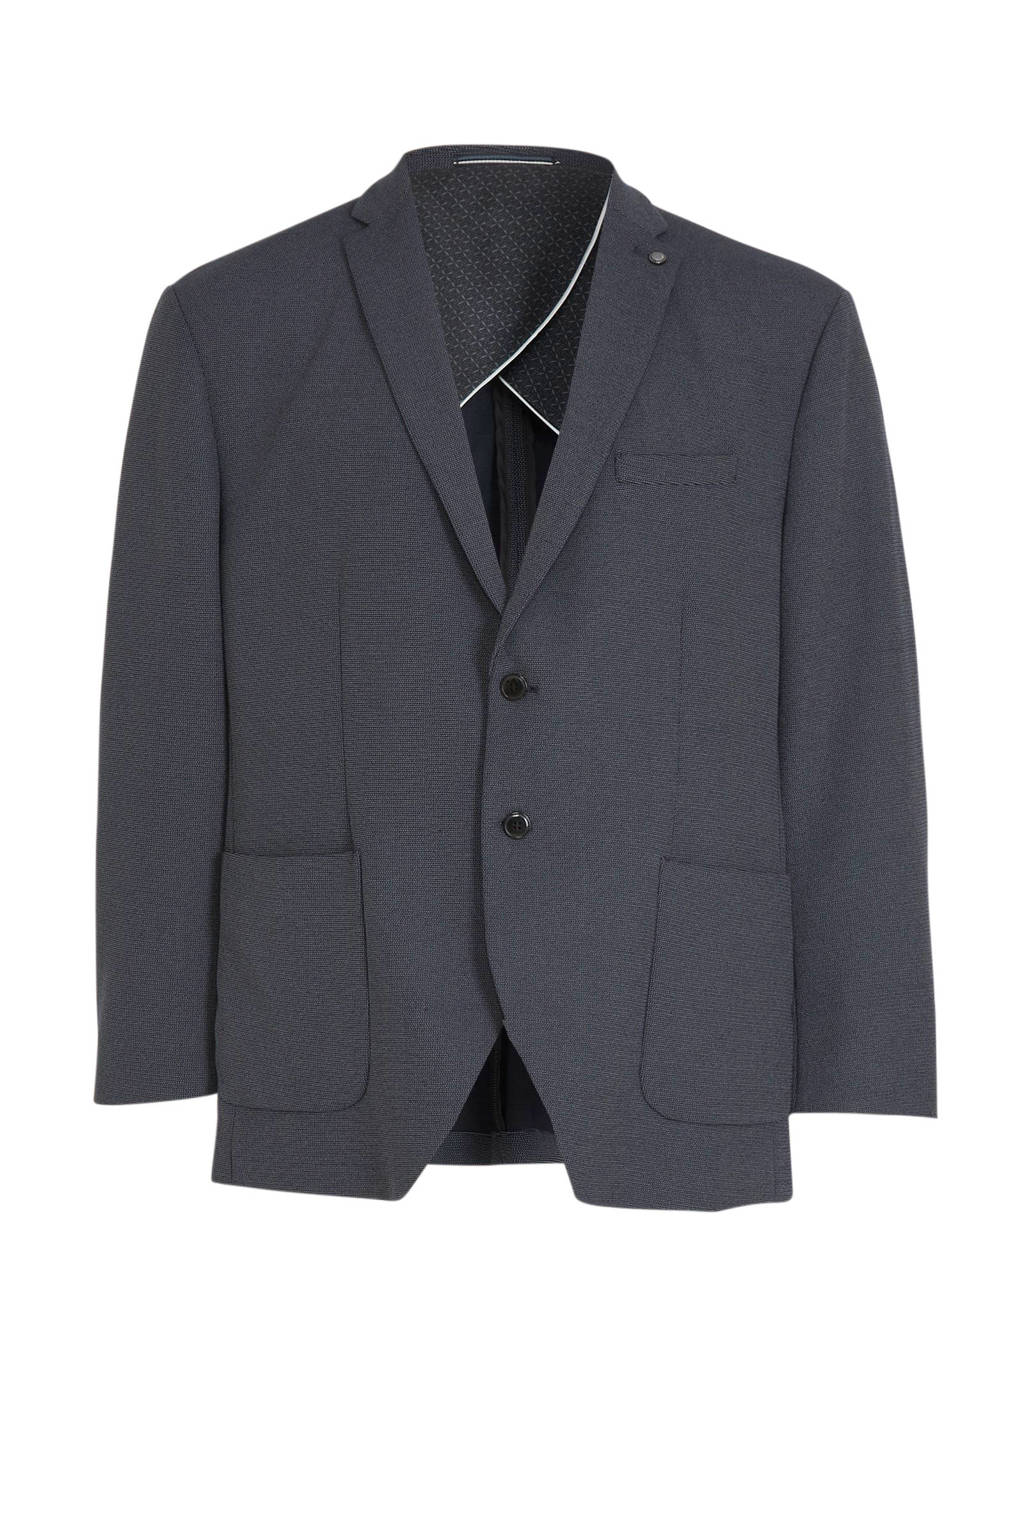 Selected Homme +Fit regular fit colbert donkerblauw melange, Donkerblauw